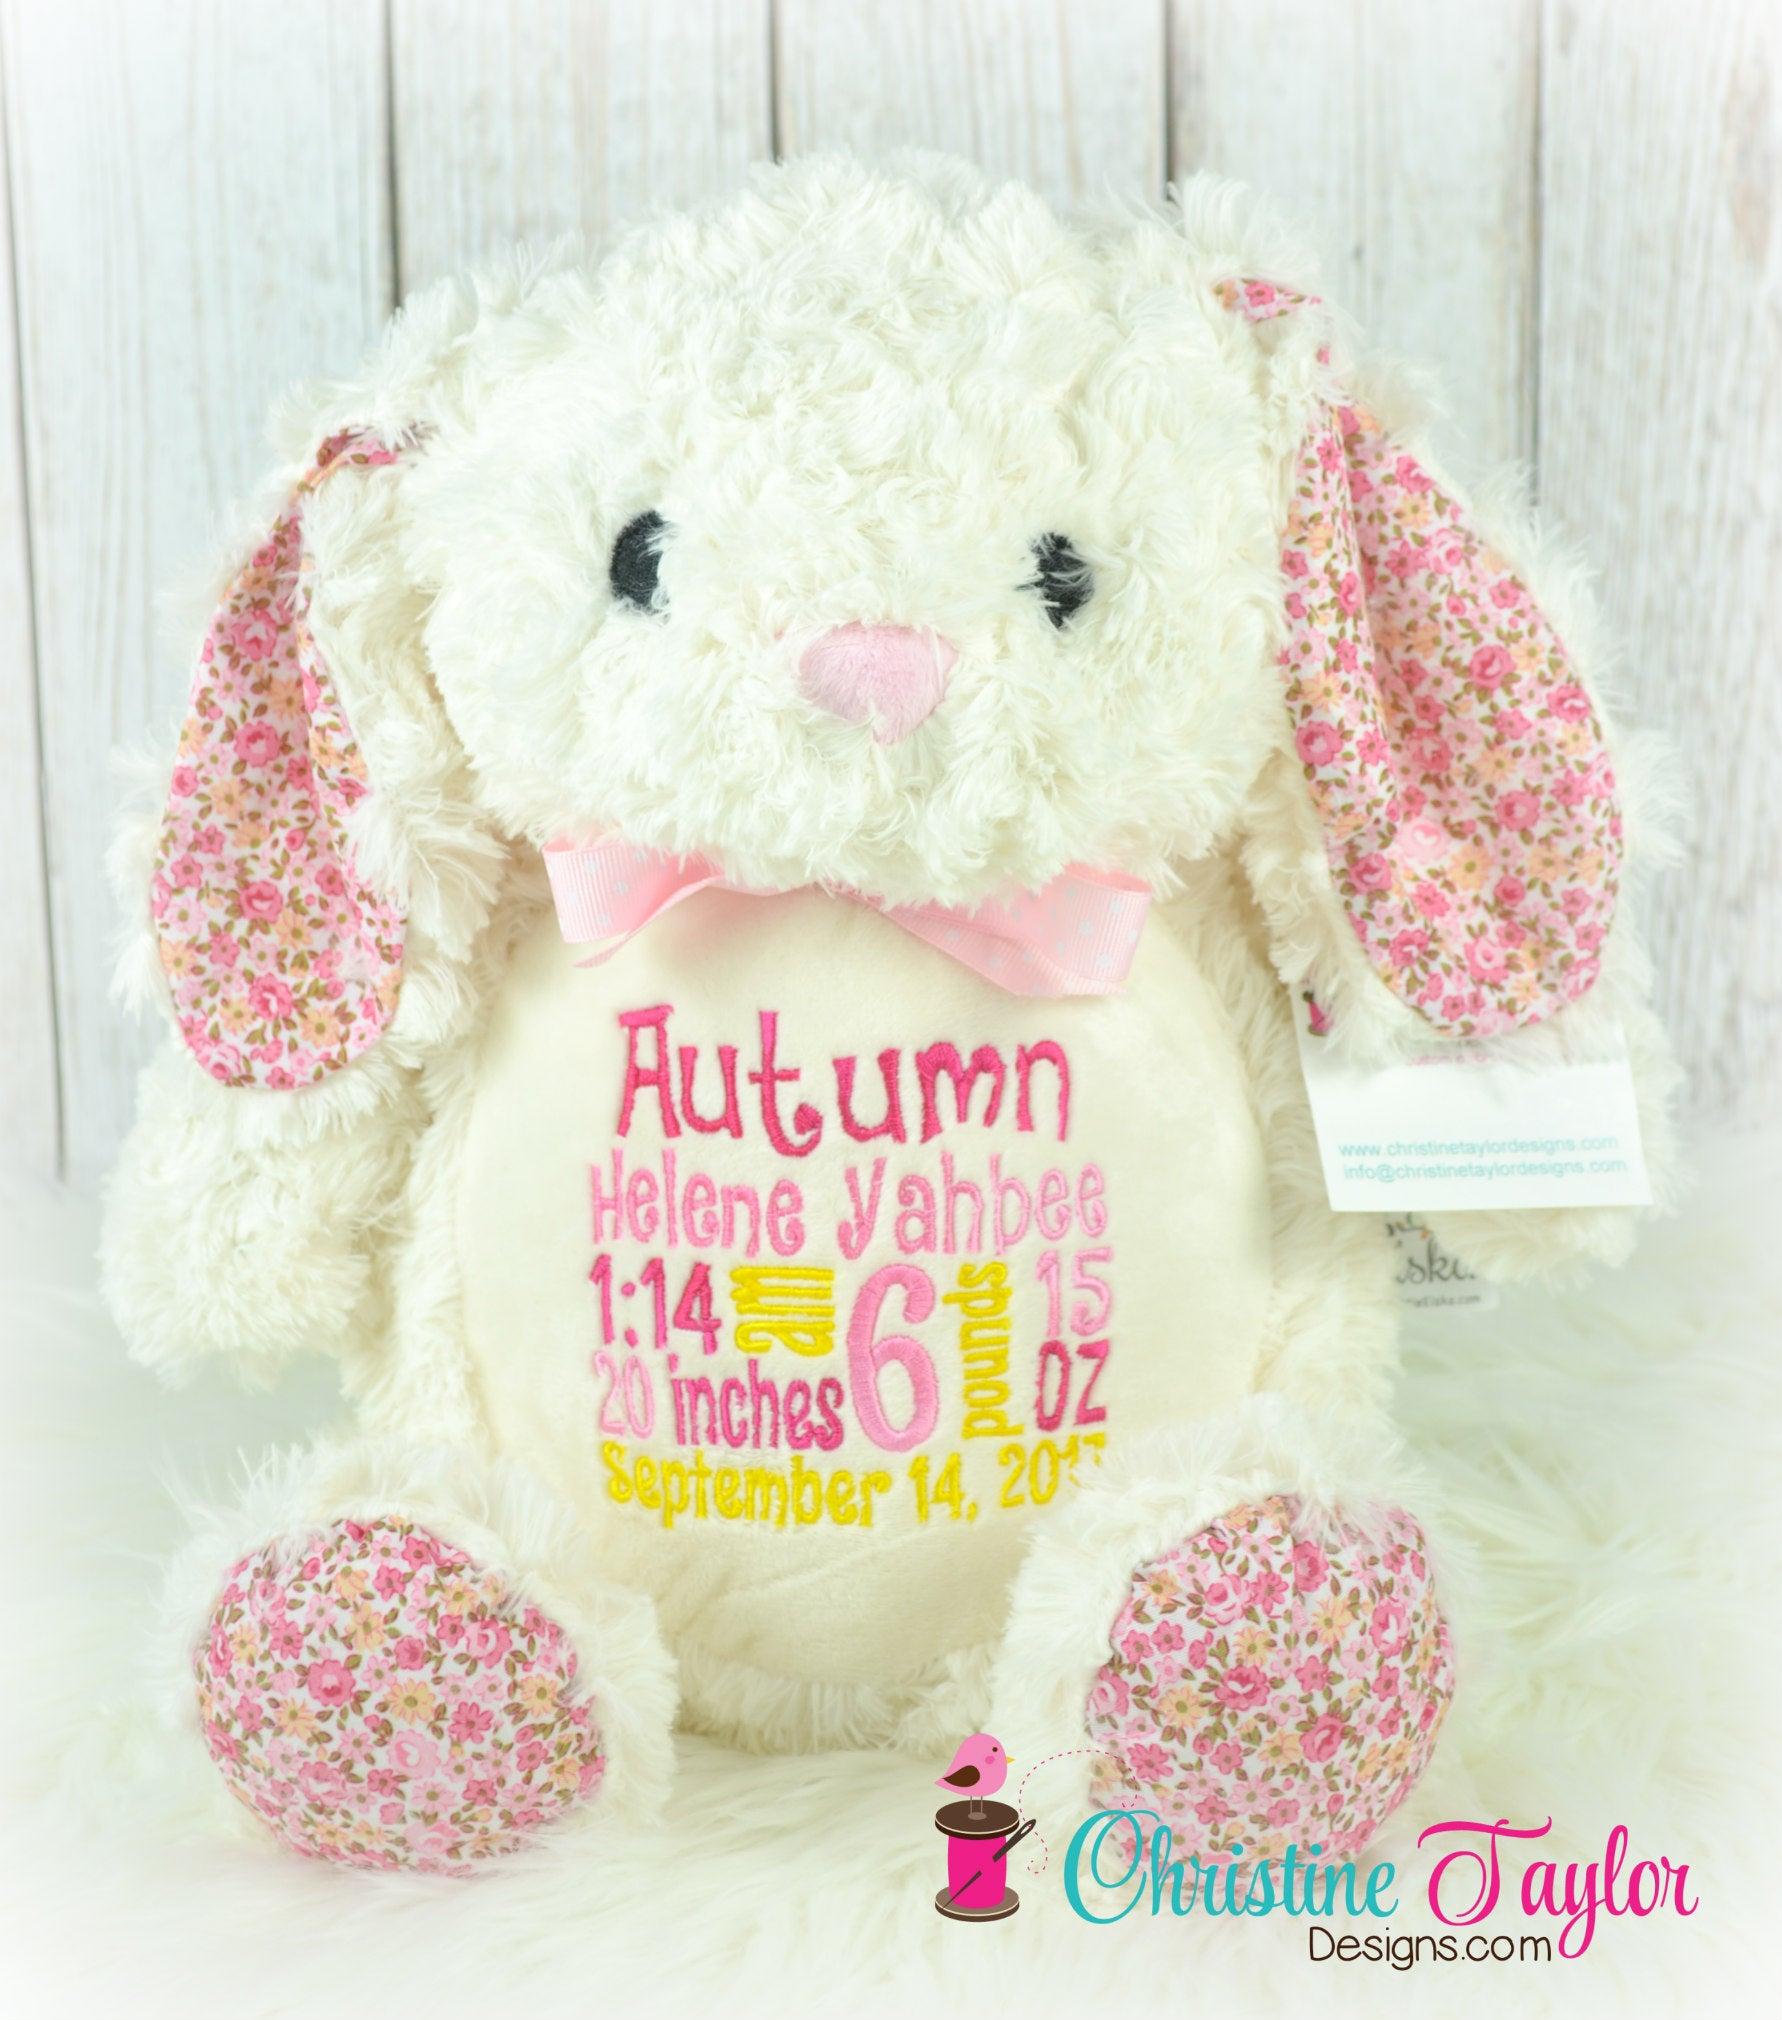 Floral Bunny - Christine Taylor Designs